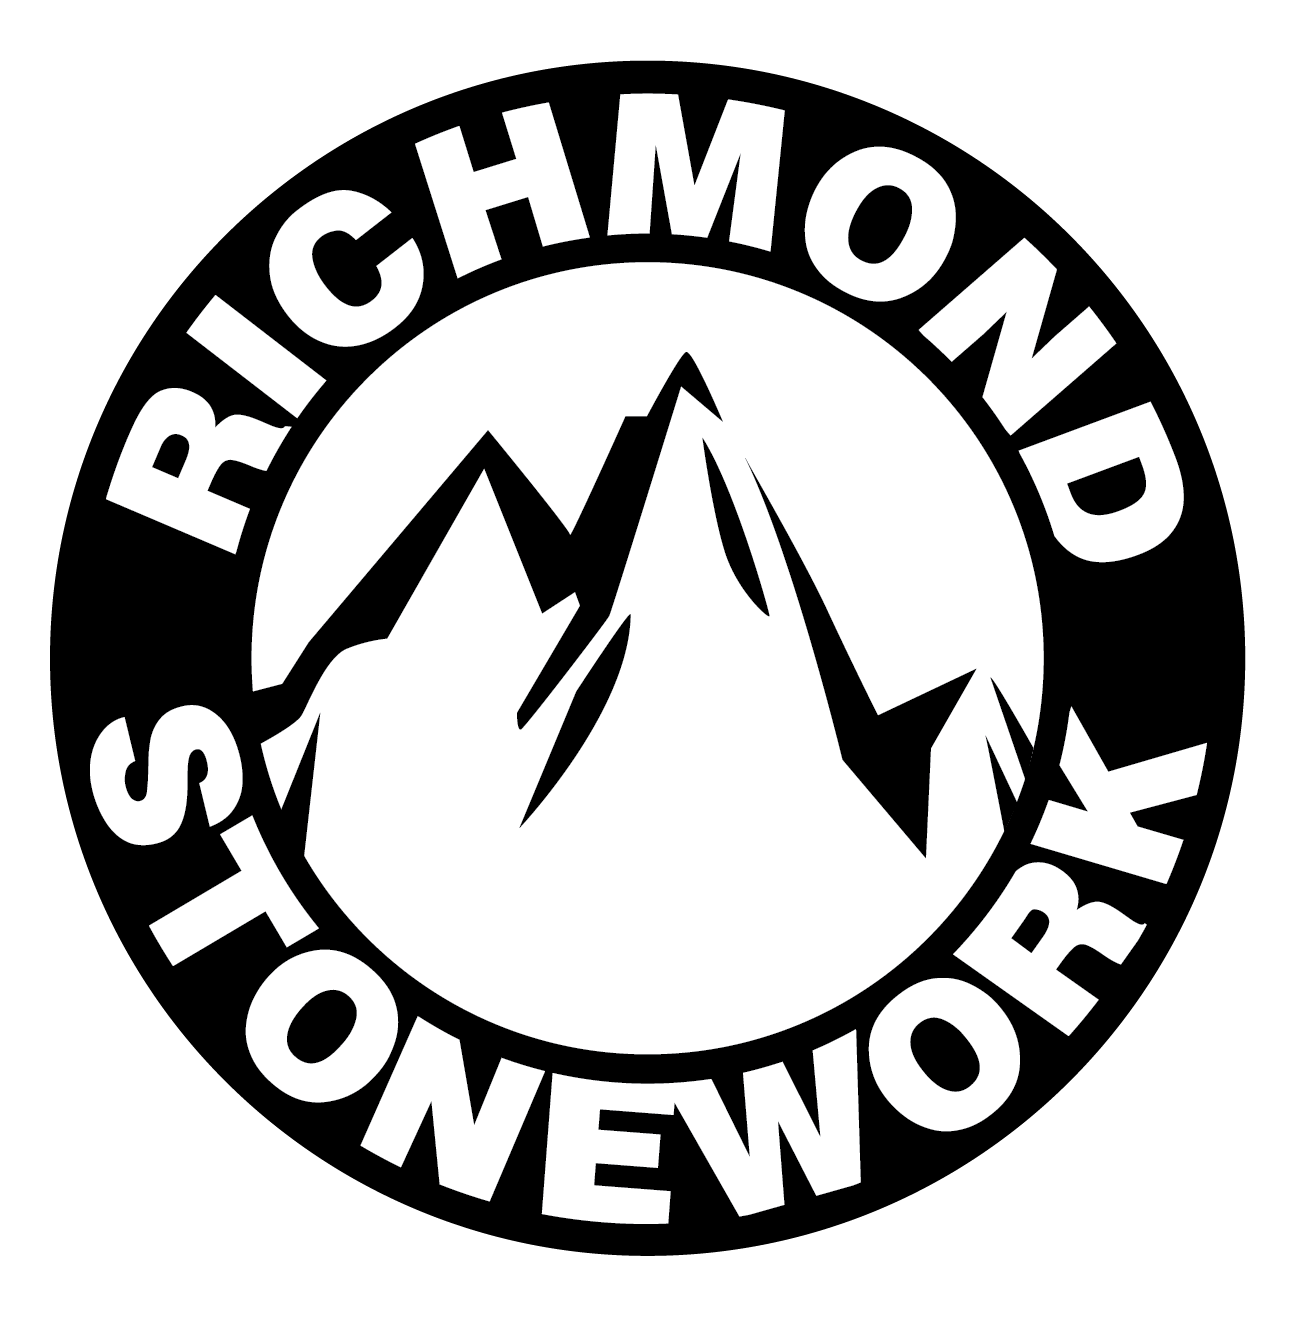 richmondstonework